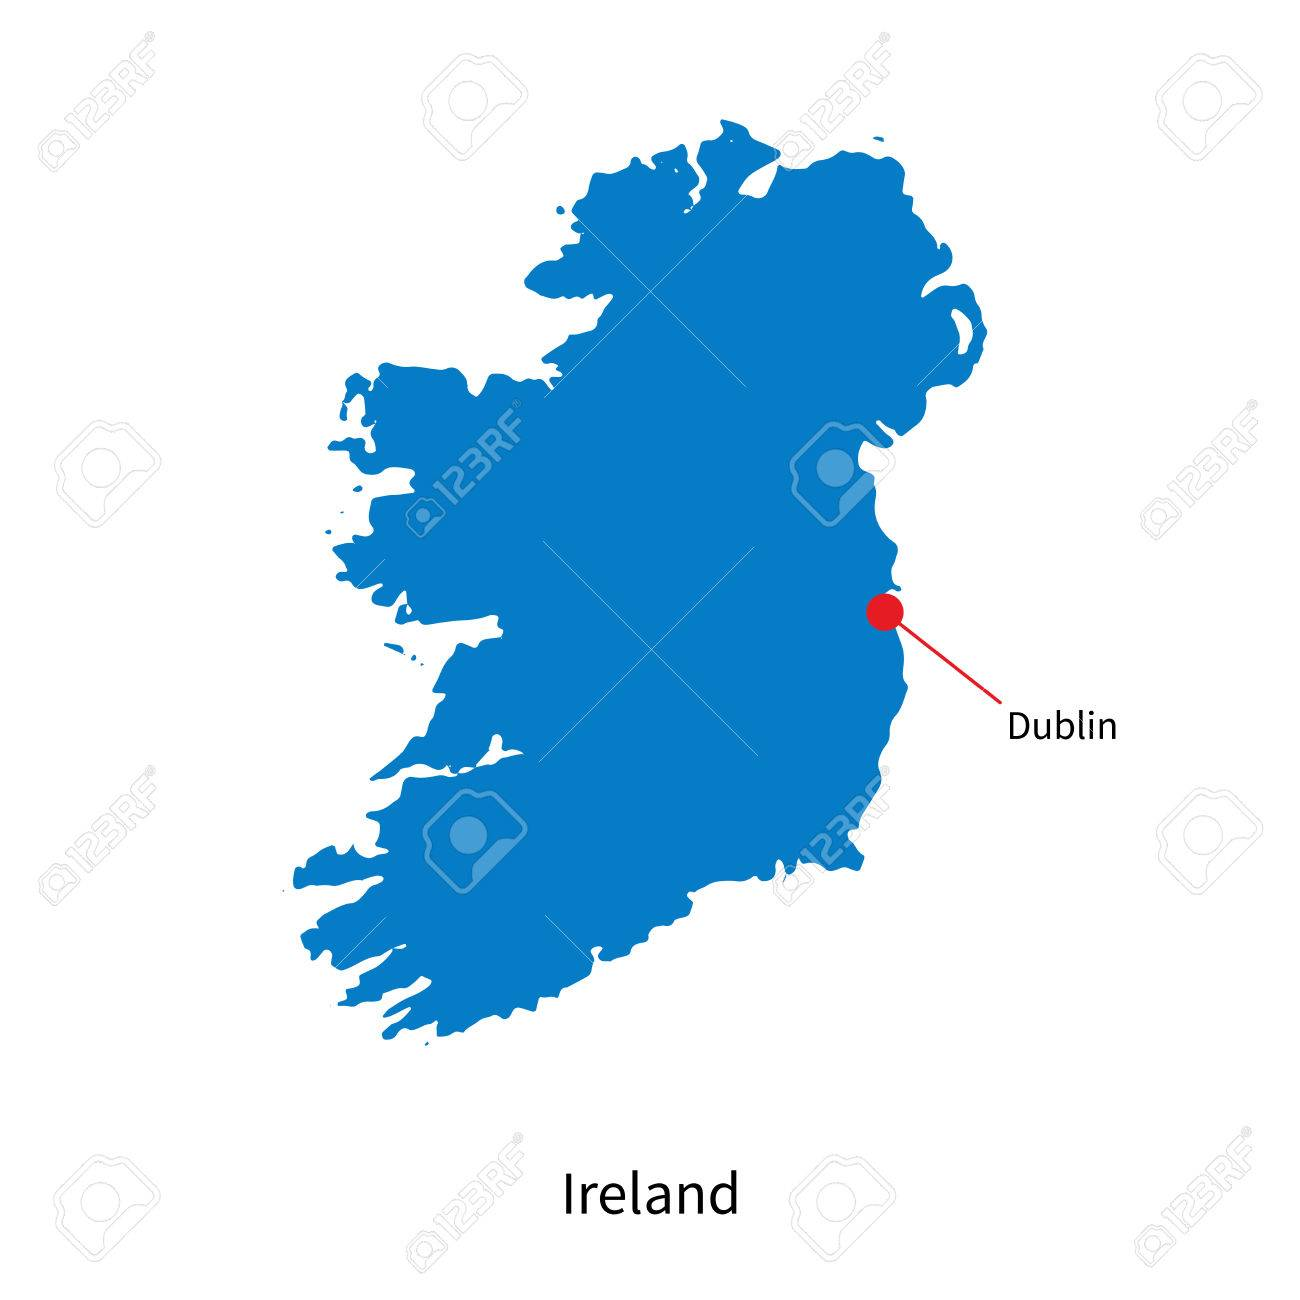 Map Of Ireland Vector.Detailed Map Of Ireland And Capital City Dublin